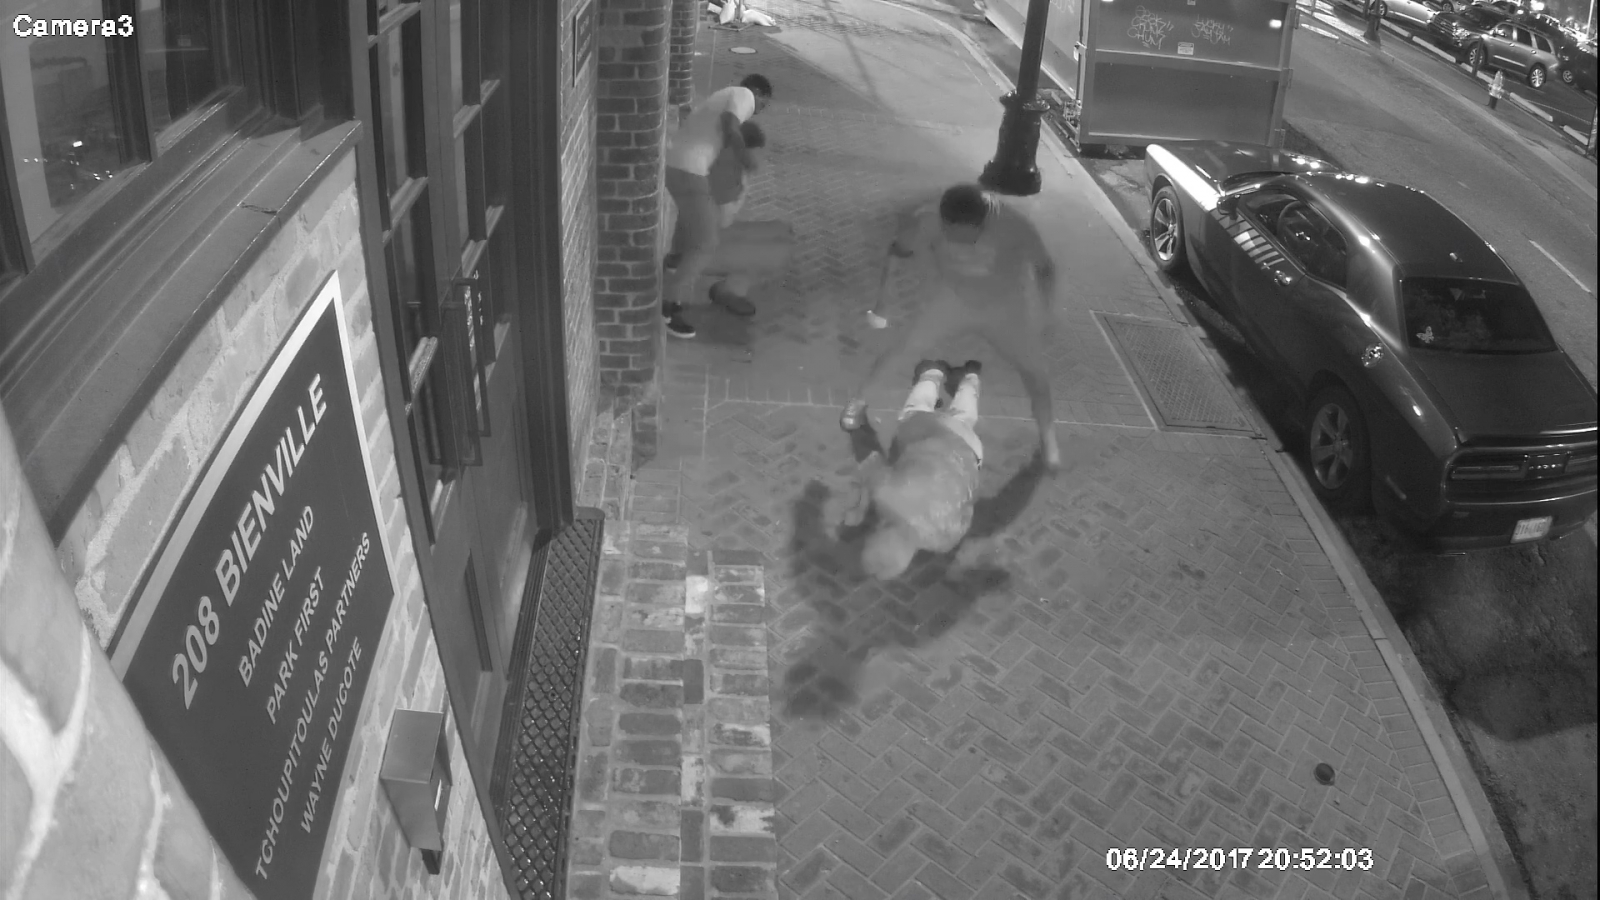 dramatic-cctv-shows-tourists-knocked-out-and-robbed-in-new-orleans